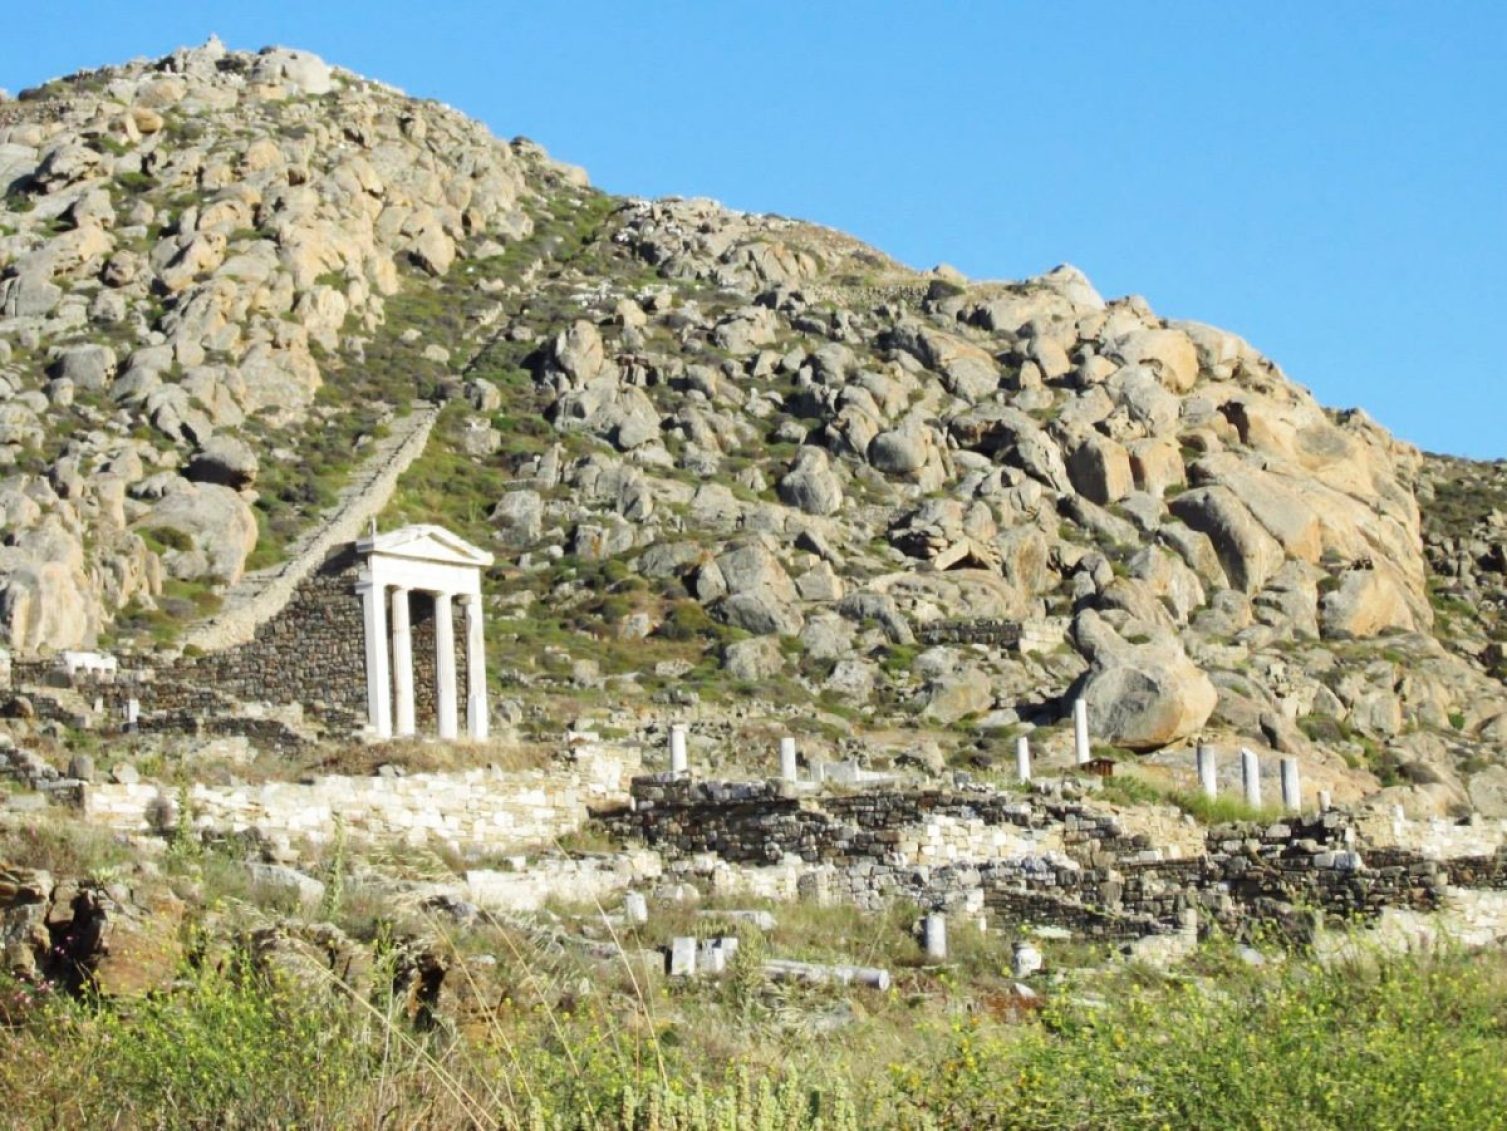 Part of the ancient site of Delos